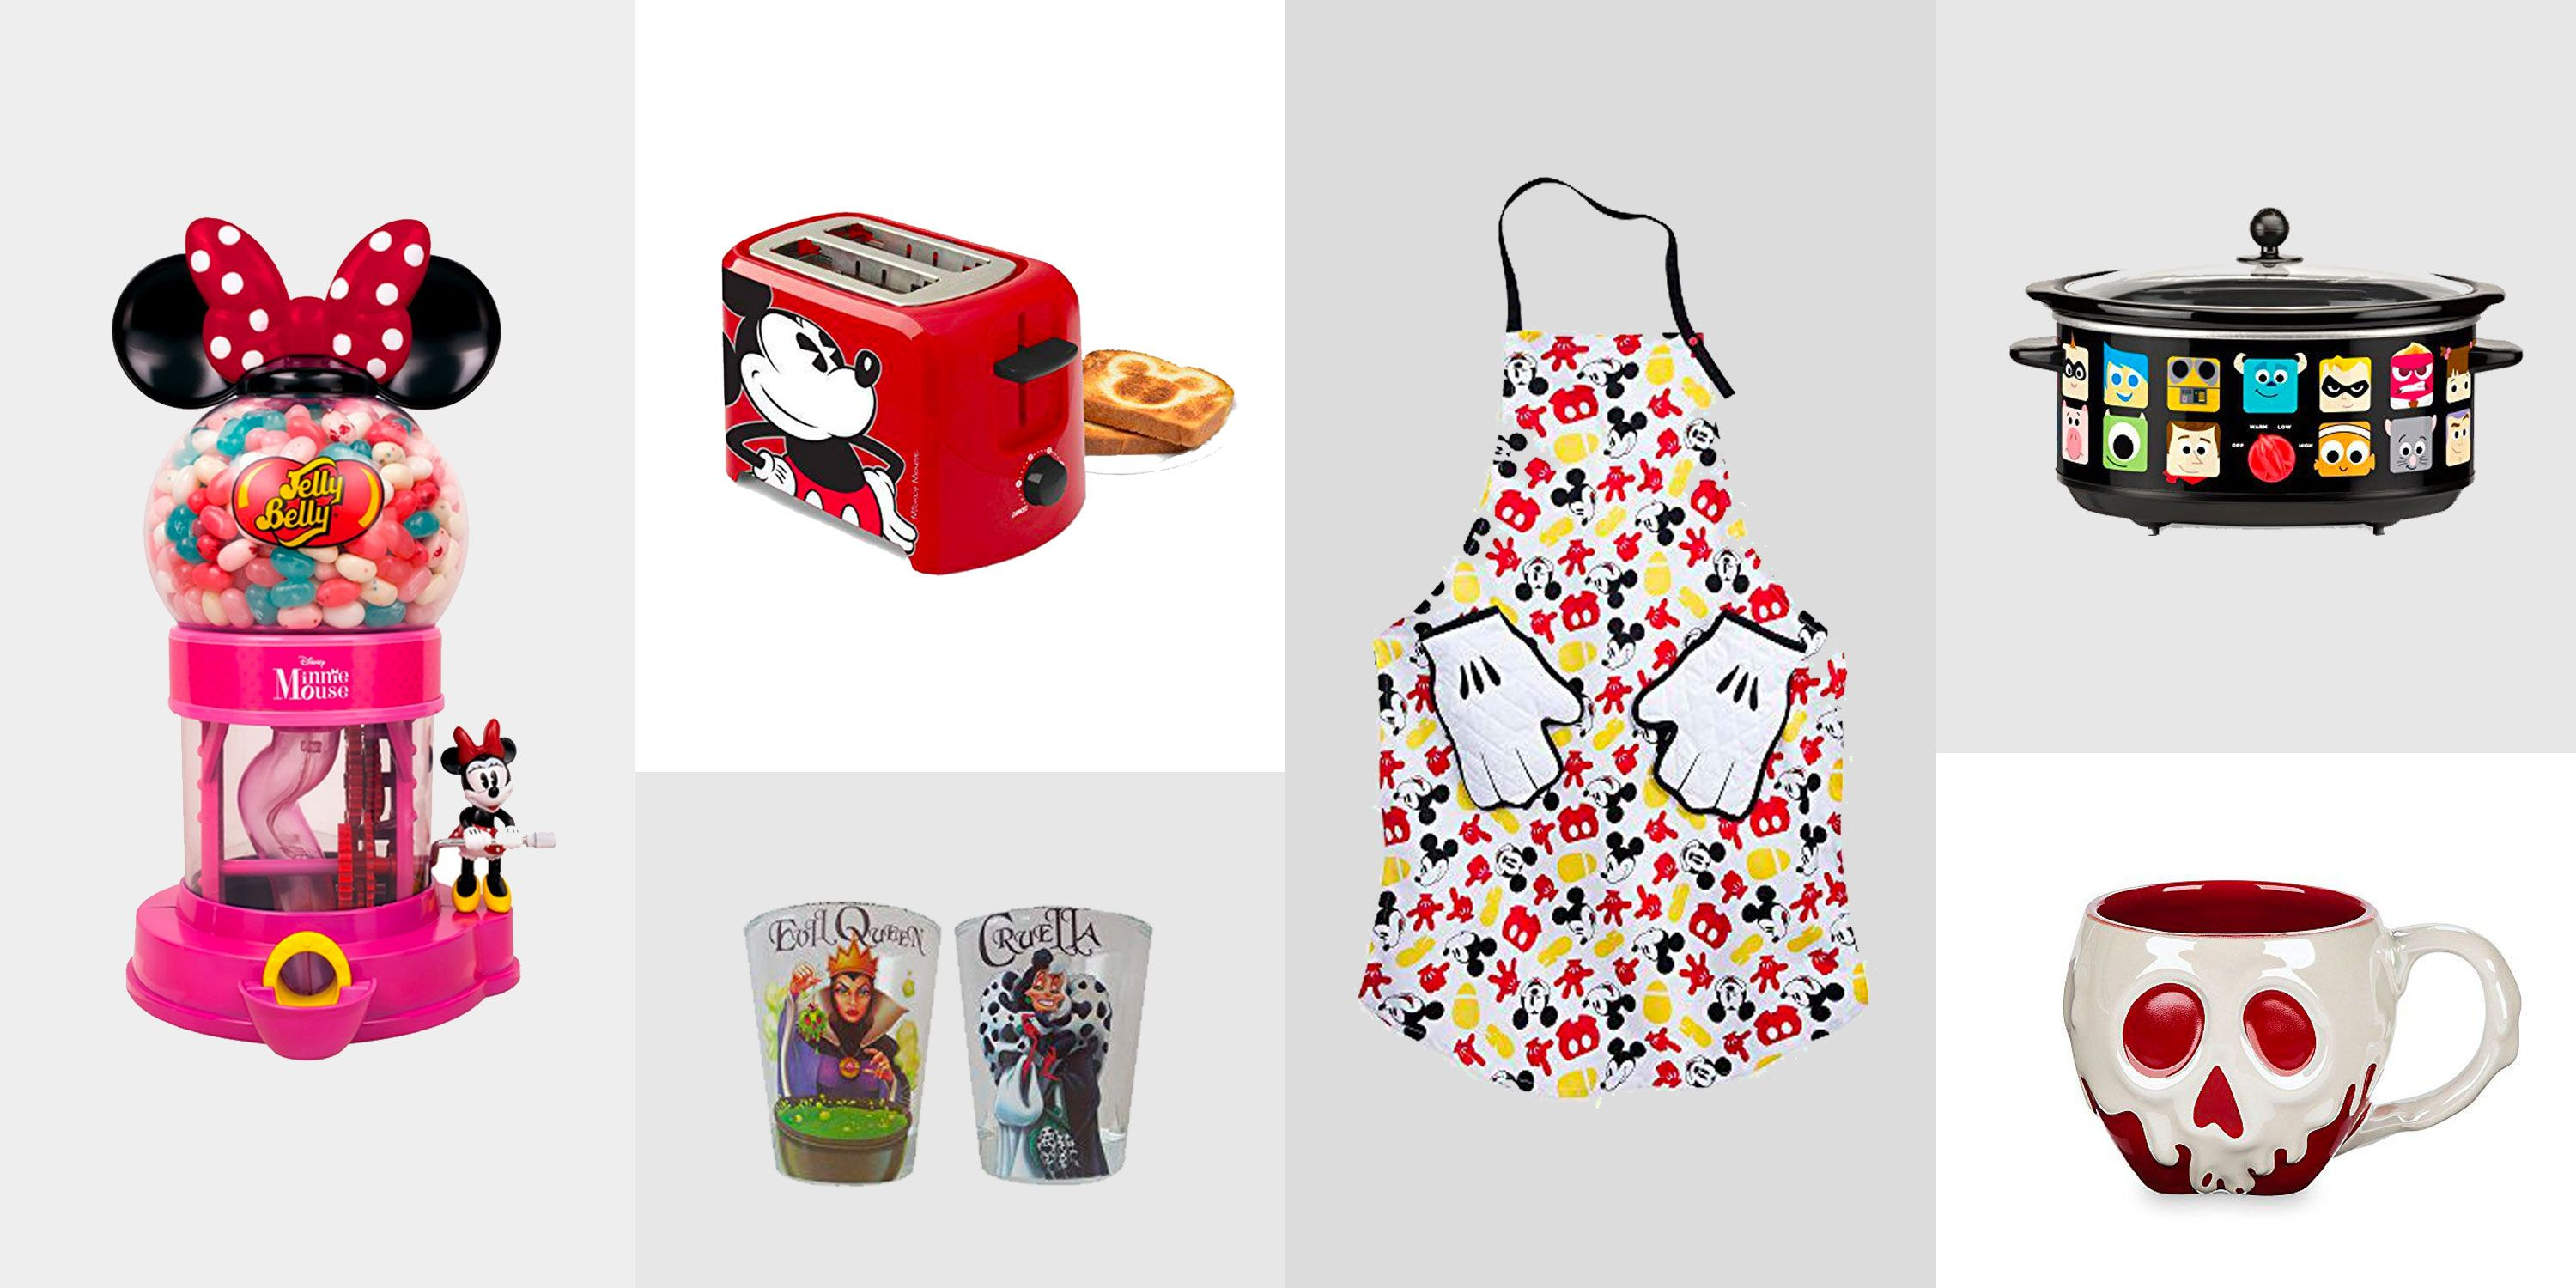 28 Gifts Any Disney-Obsessed Adult Will Go Goofy Over  sc 1 st  Delish.com & 25+ Unique Disney Gifts For Adults - Best Gift Ideas for Disney Lovers